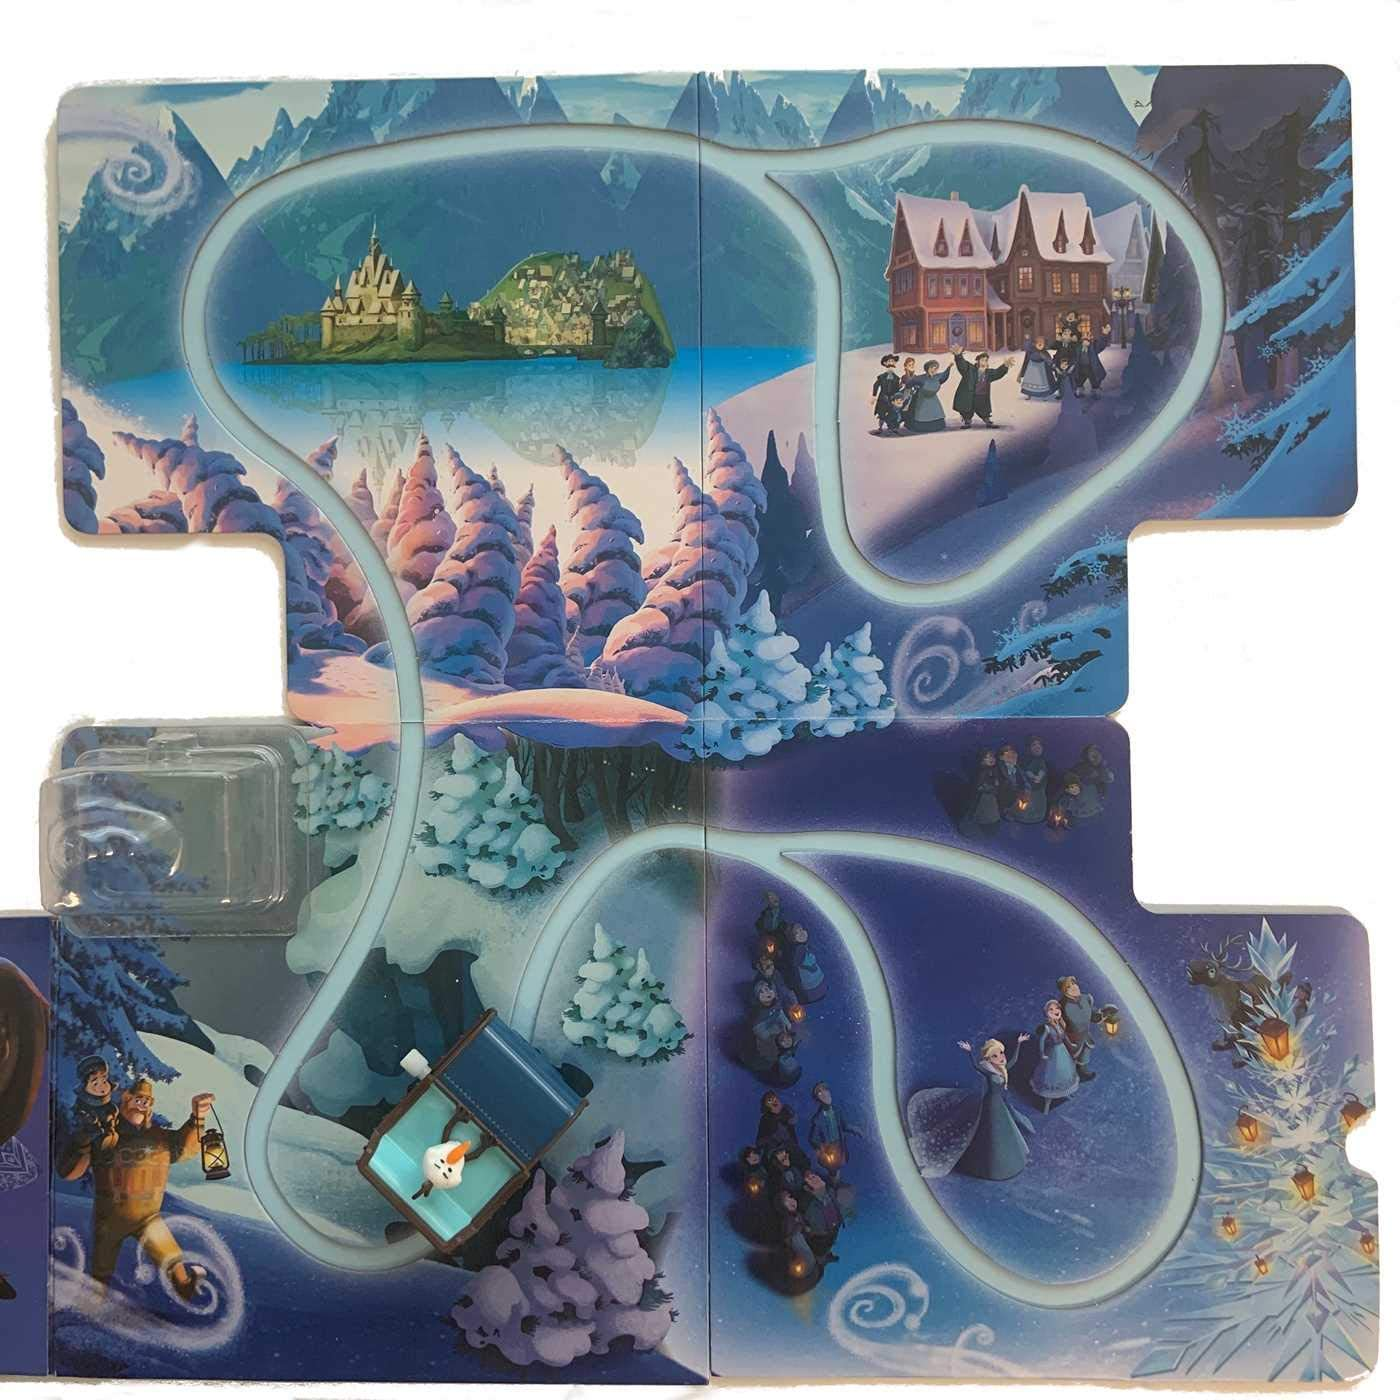 Ice Princess Elsa Winter Throne Frozen II Bag Mini Scene 30553 Bundled with Car & Activity Story Book + Plush Snowman Olaf 3 Items